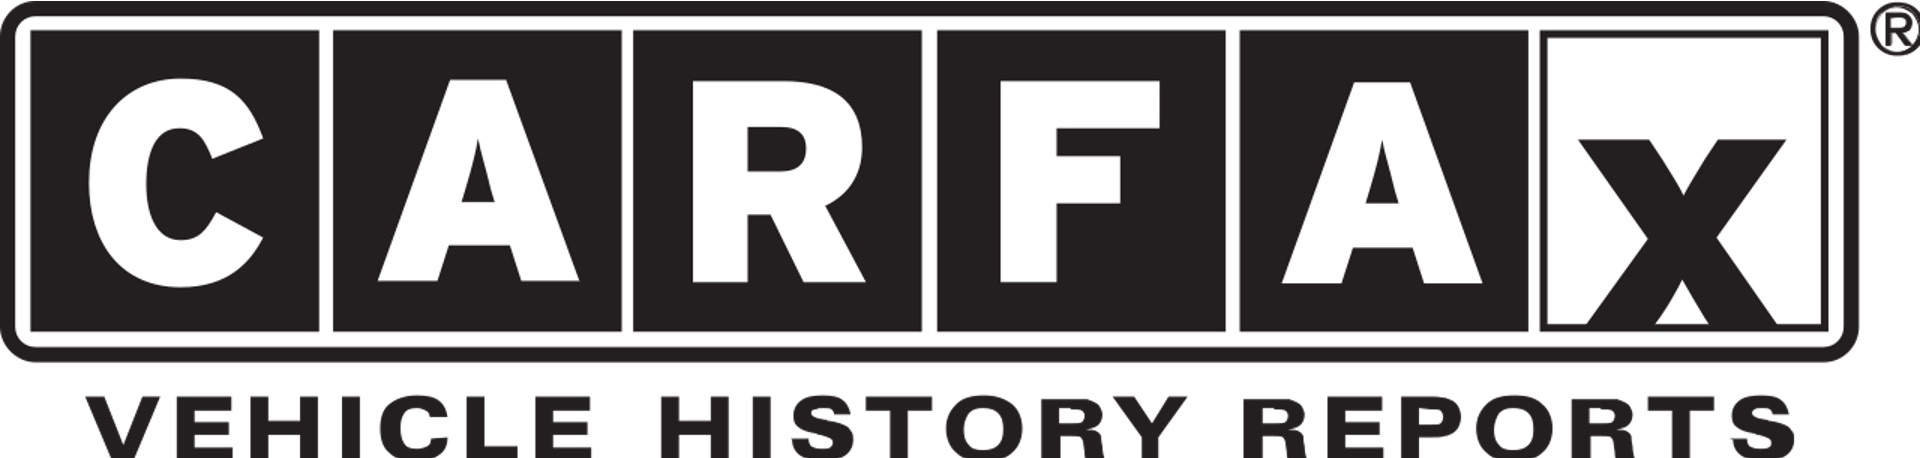 CARFAX logo that reads: CARFAX VEHICLE HISTORY REPORTS in black and white colors